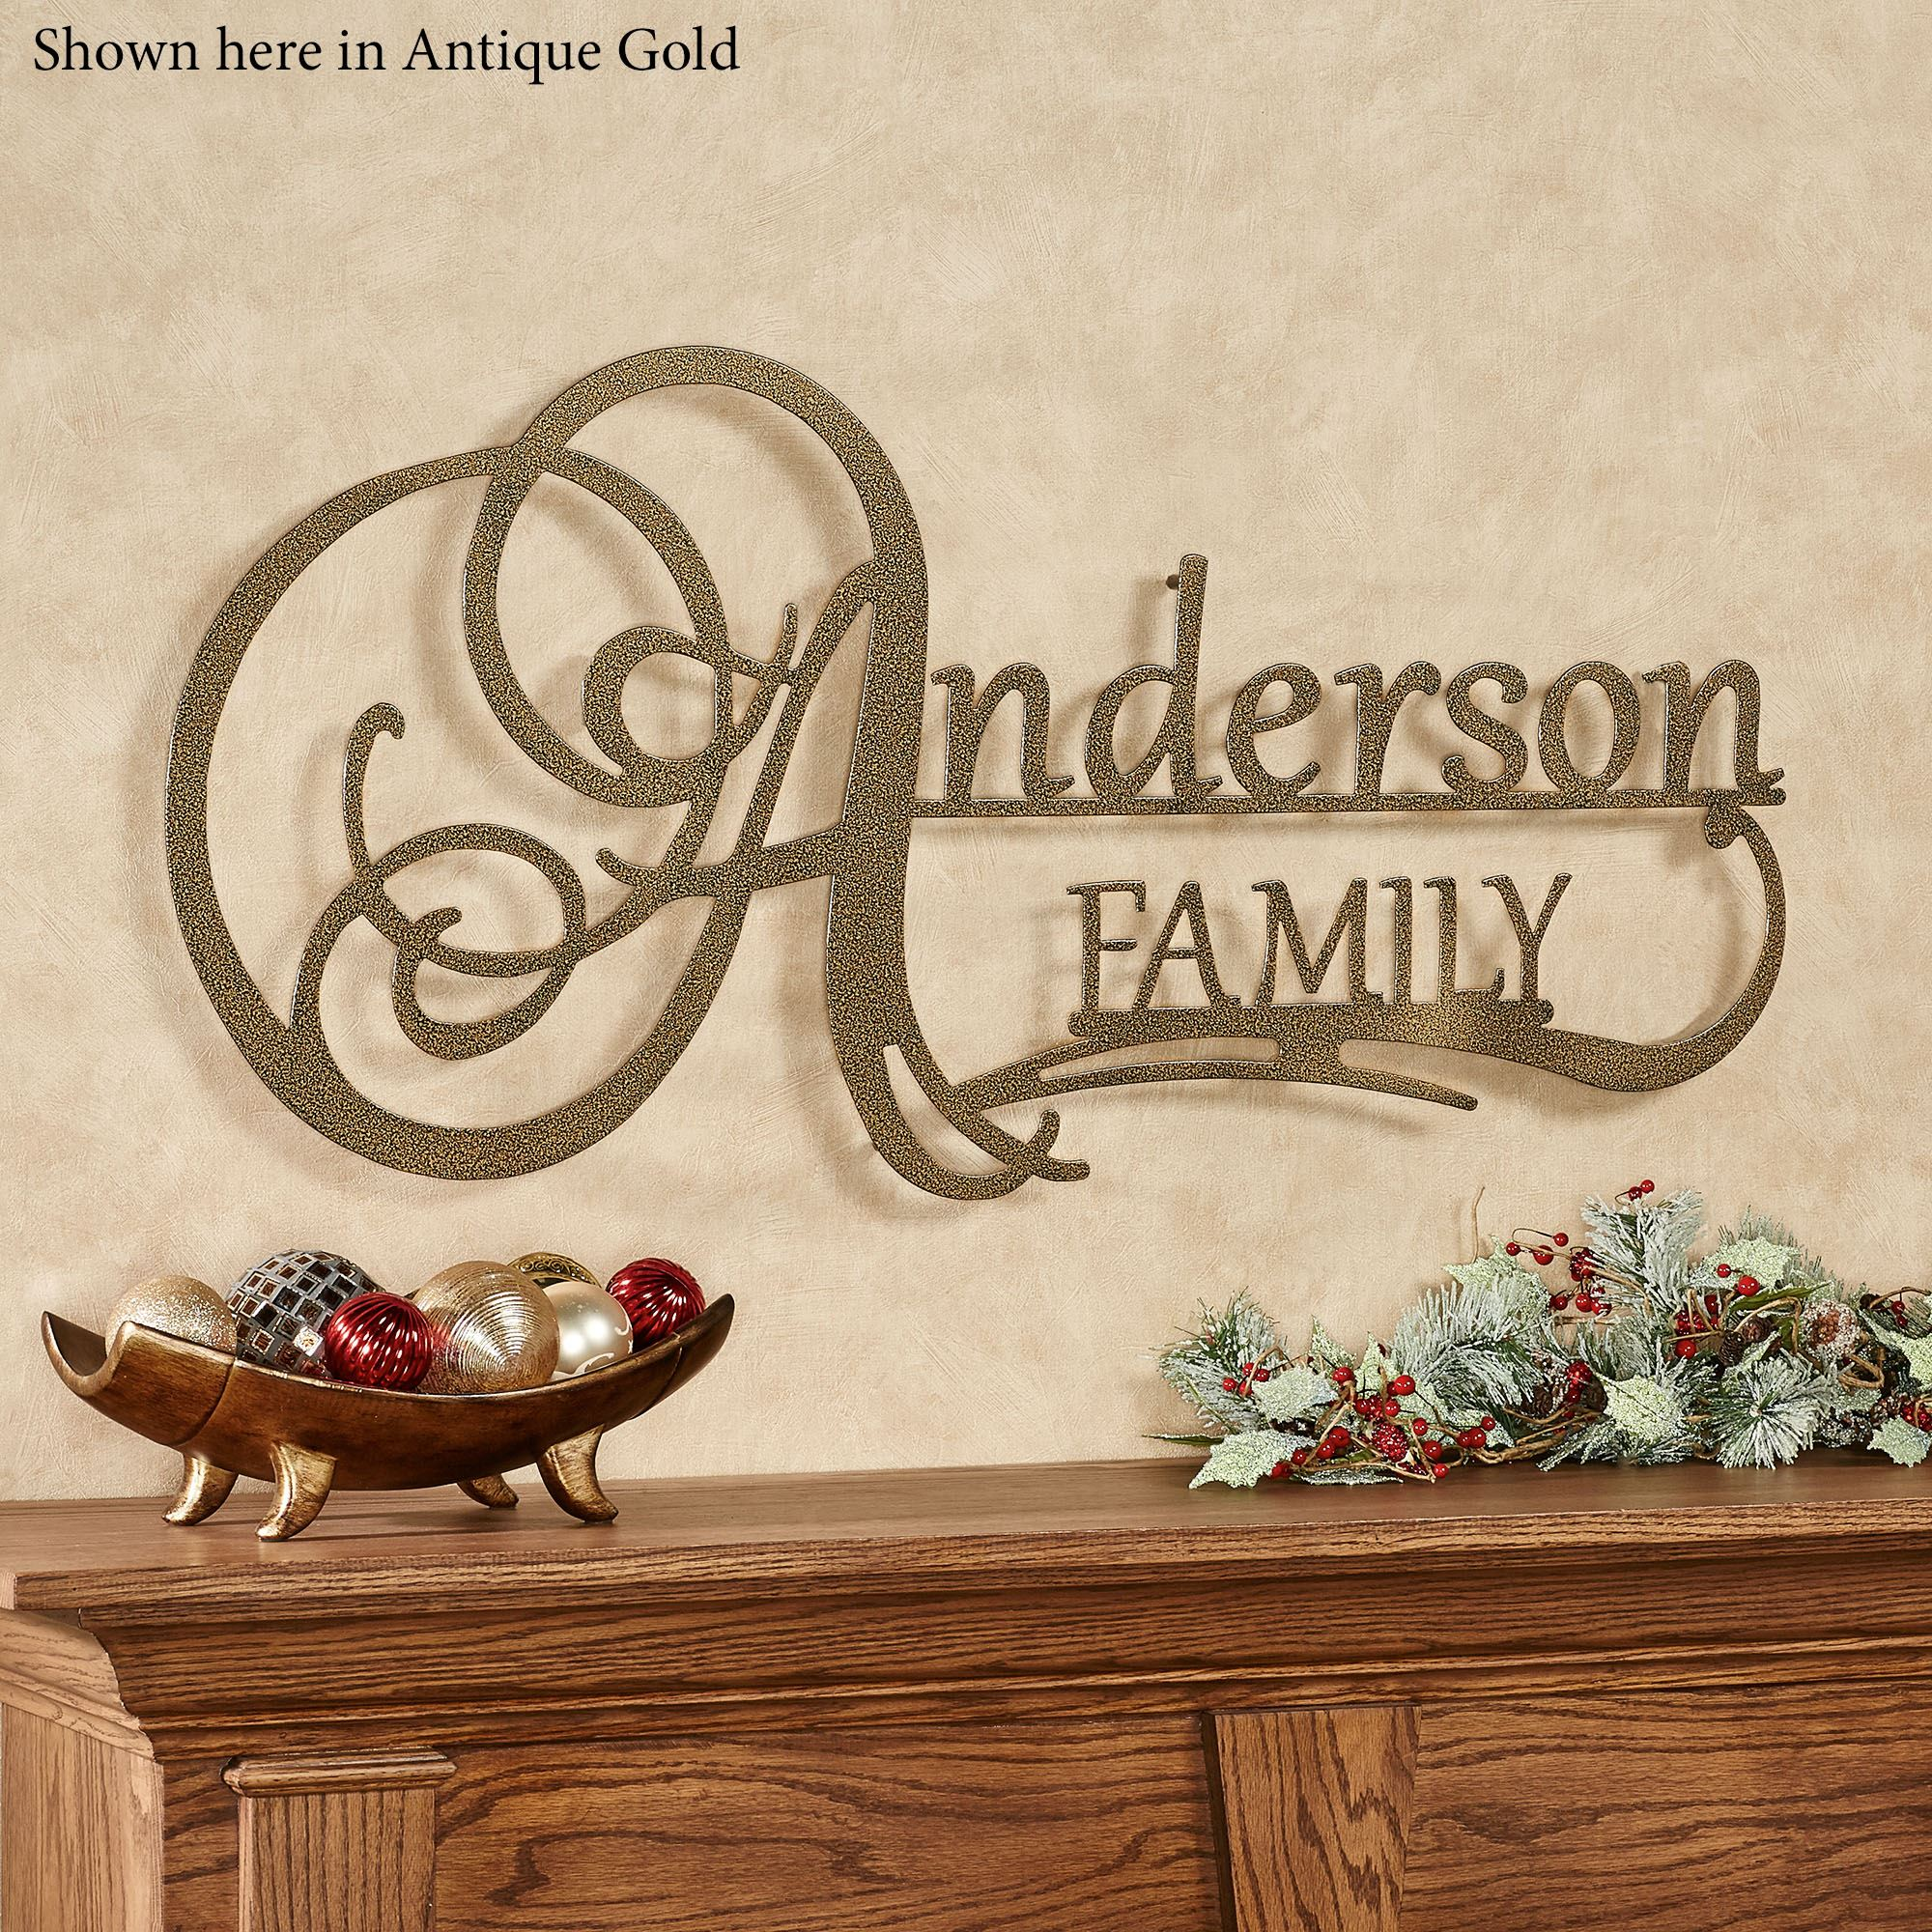 Affinity Family Personalized Metal Wall Art Sign By Jasonw